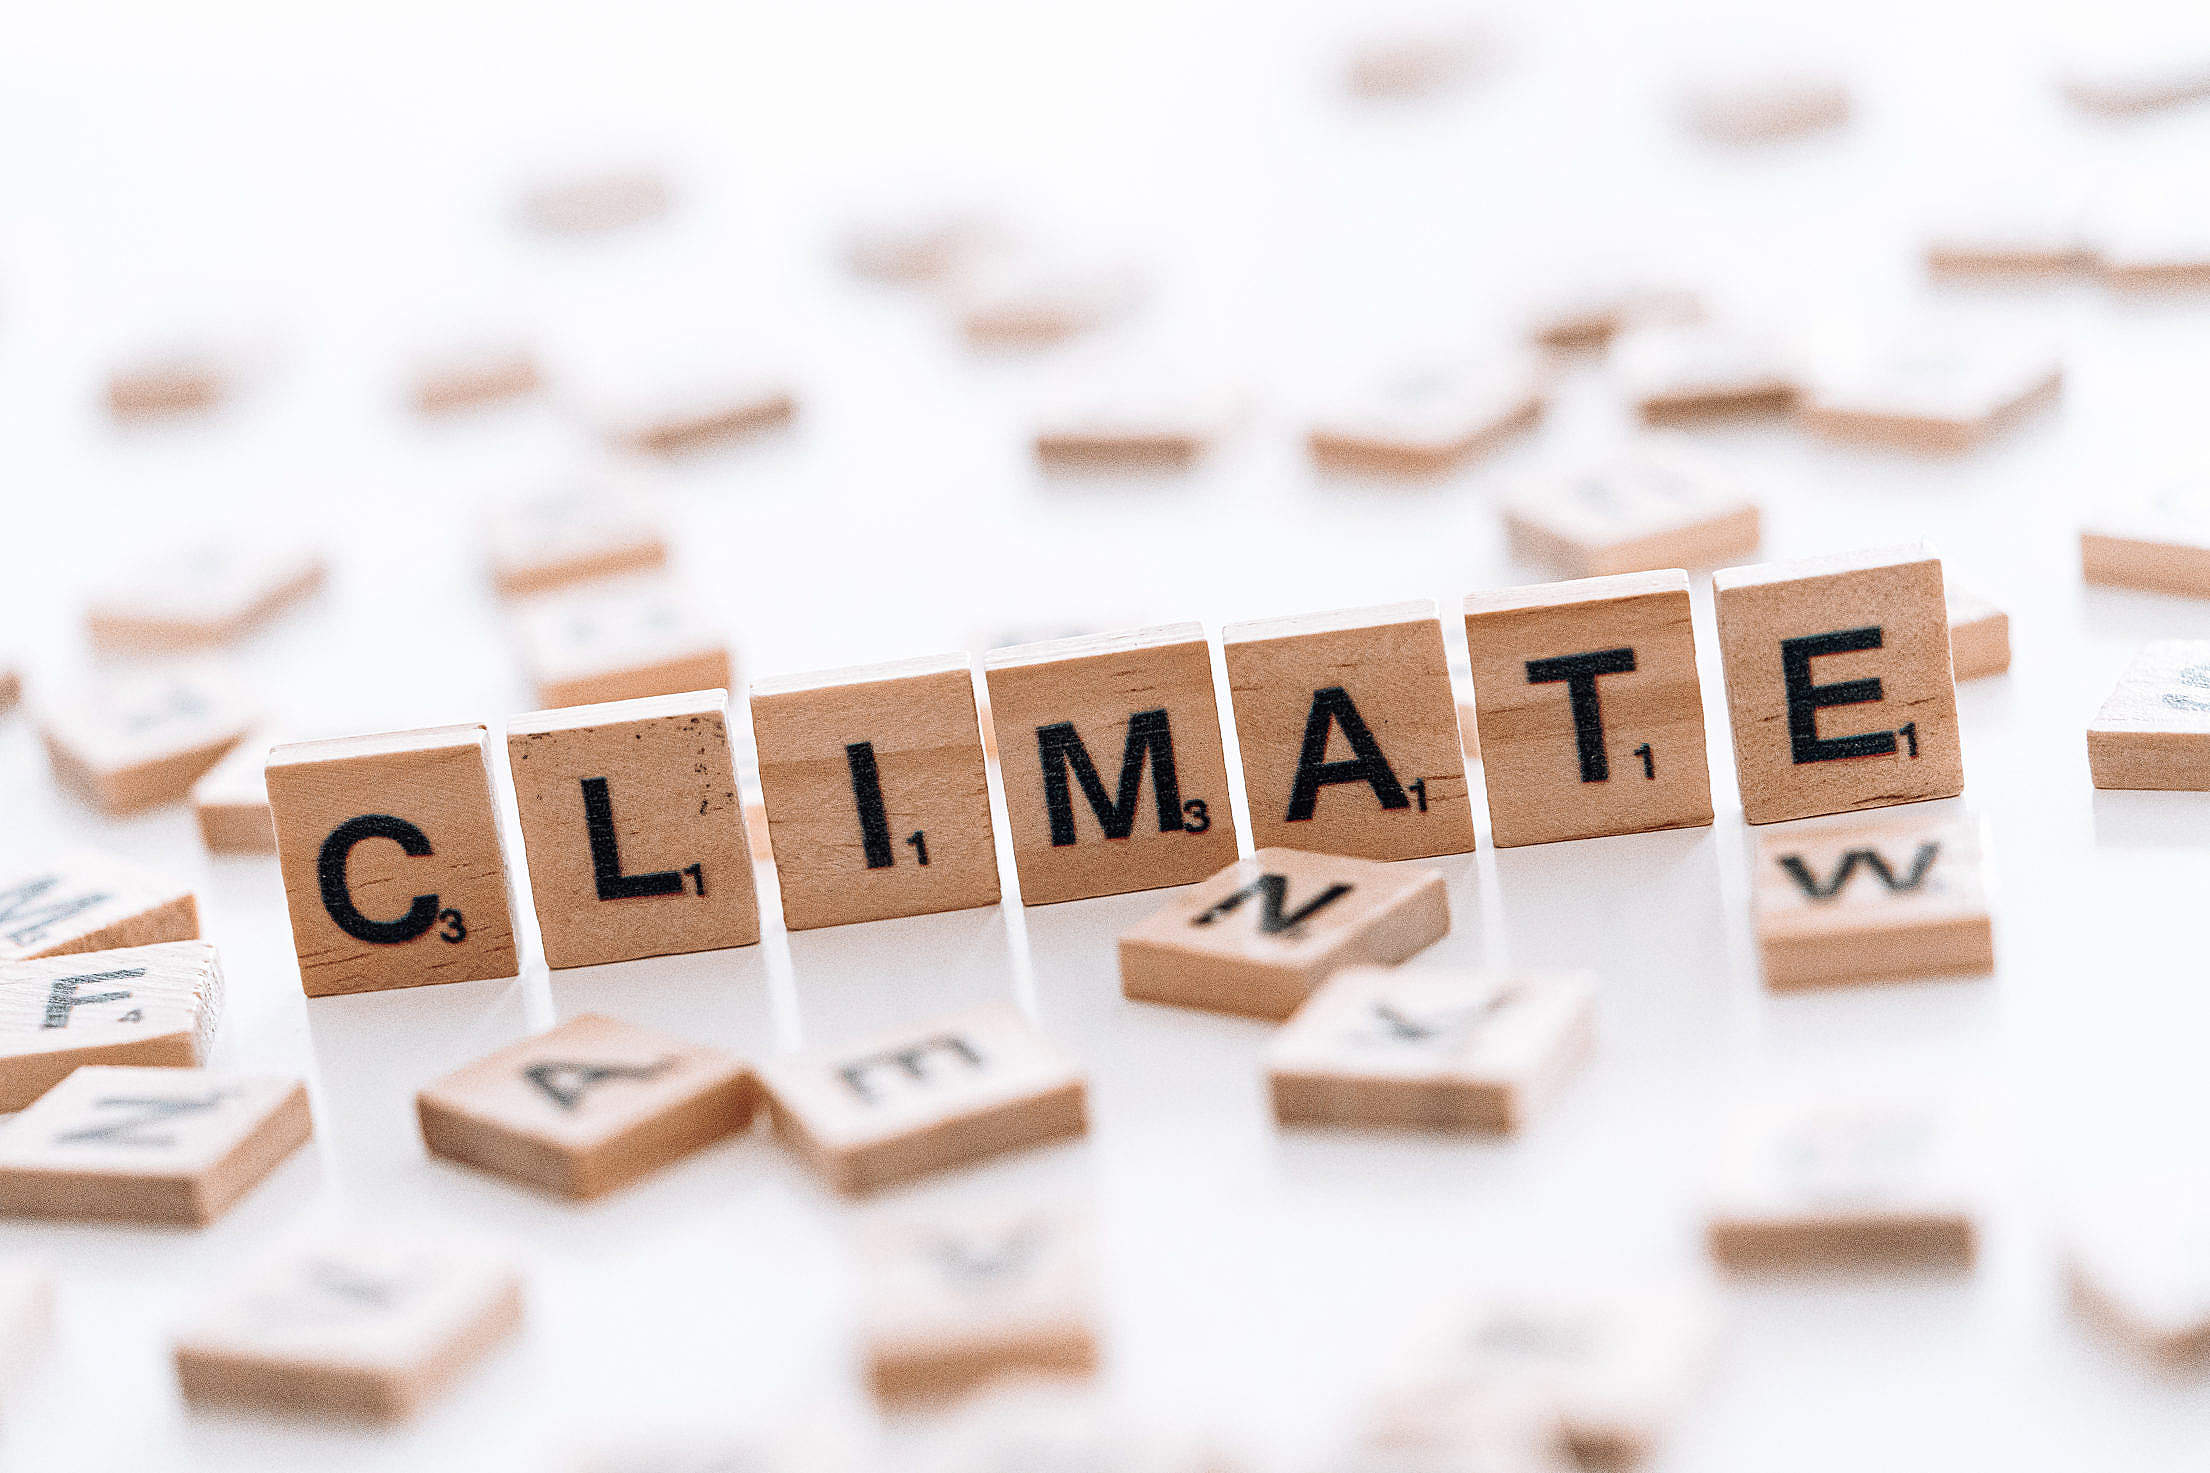 The Word Climate Written on The Scrabble Tiles Free Stock Photo